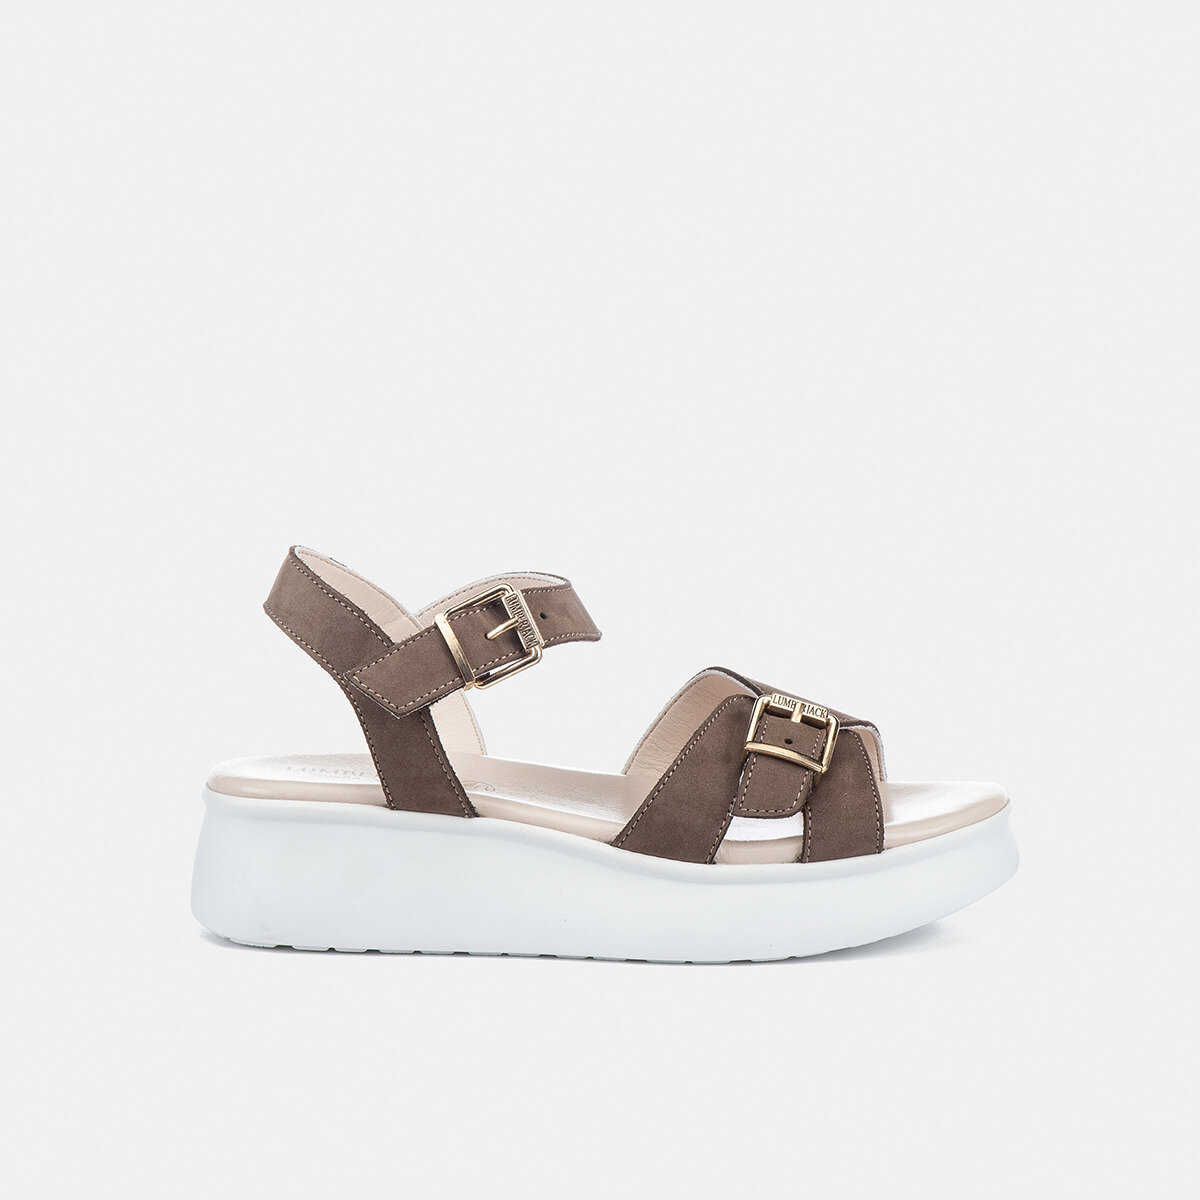 WENDY Taupe Woman Sandals